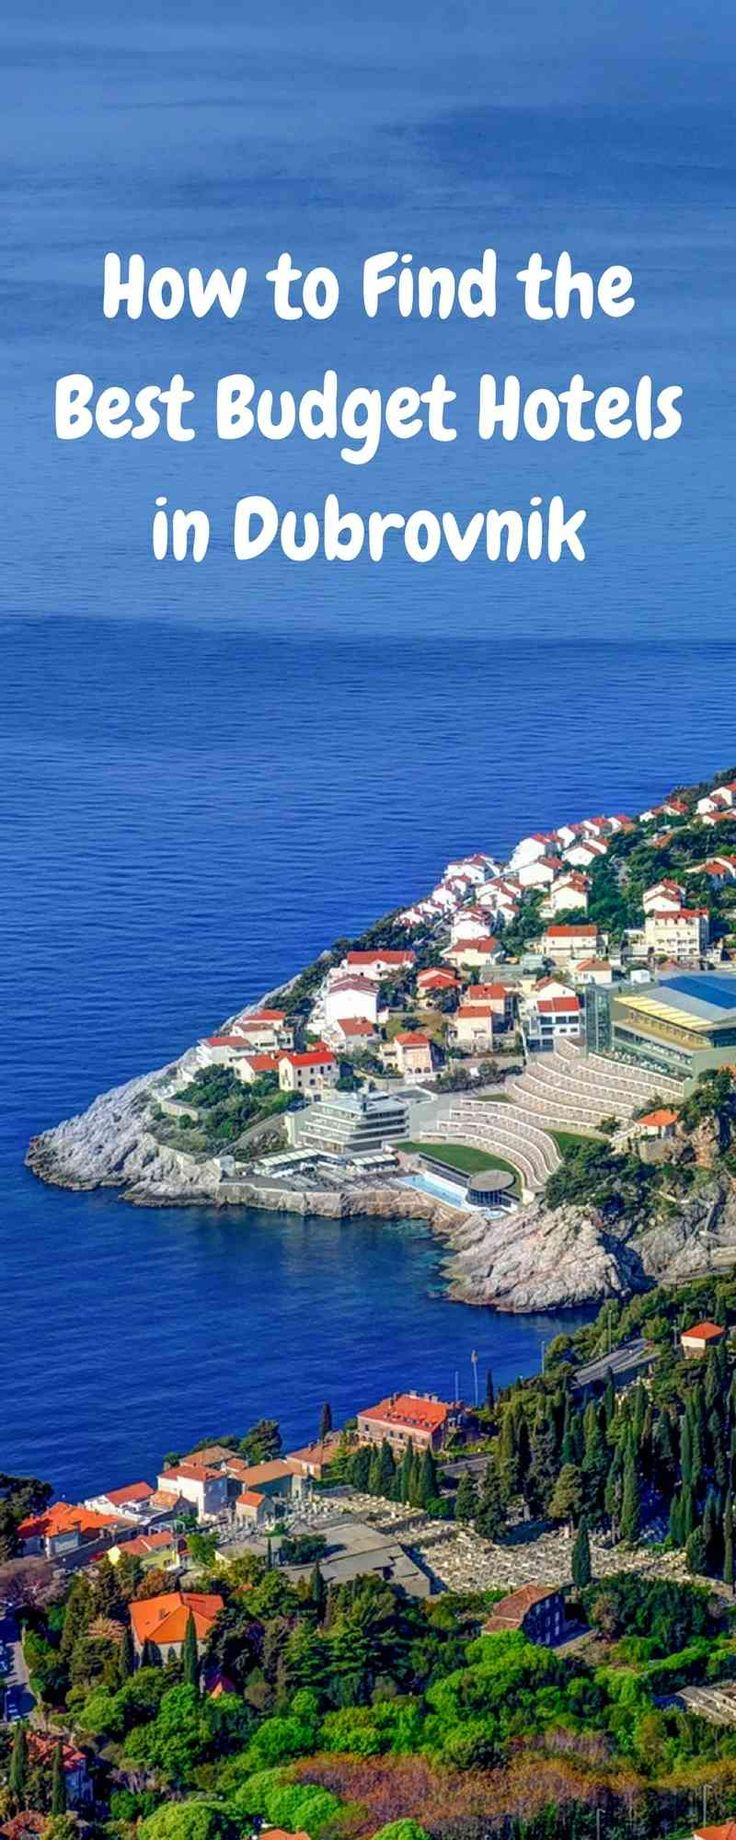 Best Area to Stay in Dubrovnik On A Budget | Find the Best Budget Hotels in Dubrovnik | Eastern Europe Travel | Eastern Europe Food | Eastern Europe Women | Eastern Europe Itinerary | Europe Travel | Europe Fashion | Travel | Croatia | Dubrovnik | A Road to Travel.com